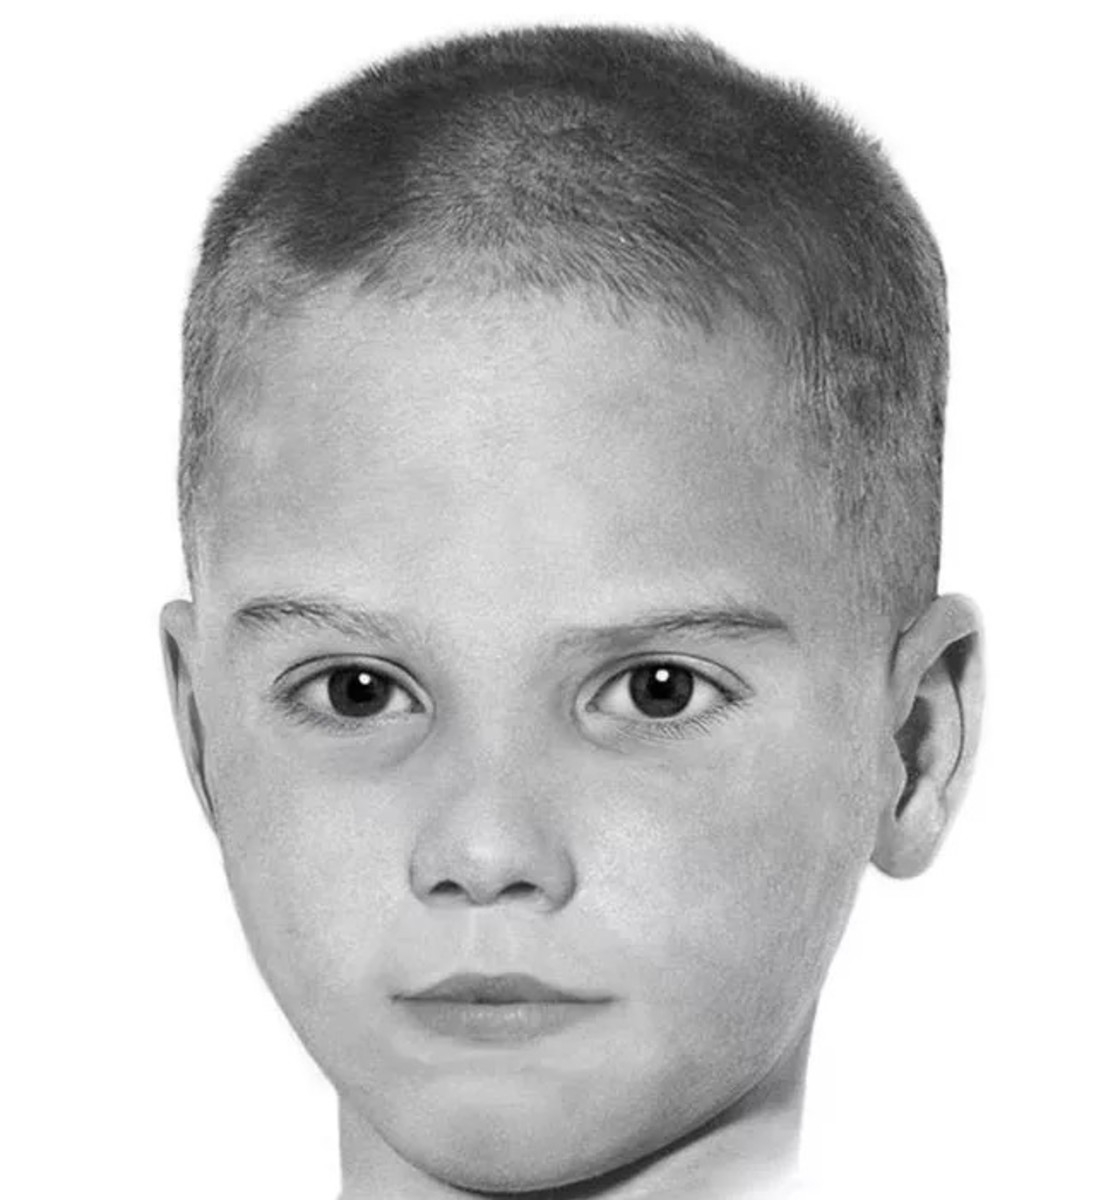 An artist's sketch of the unknown child.